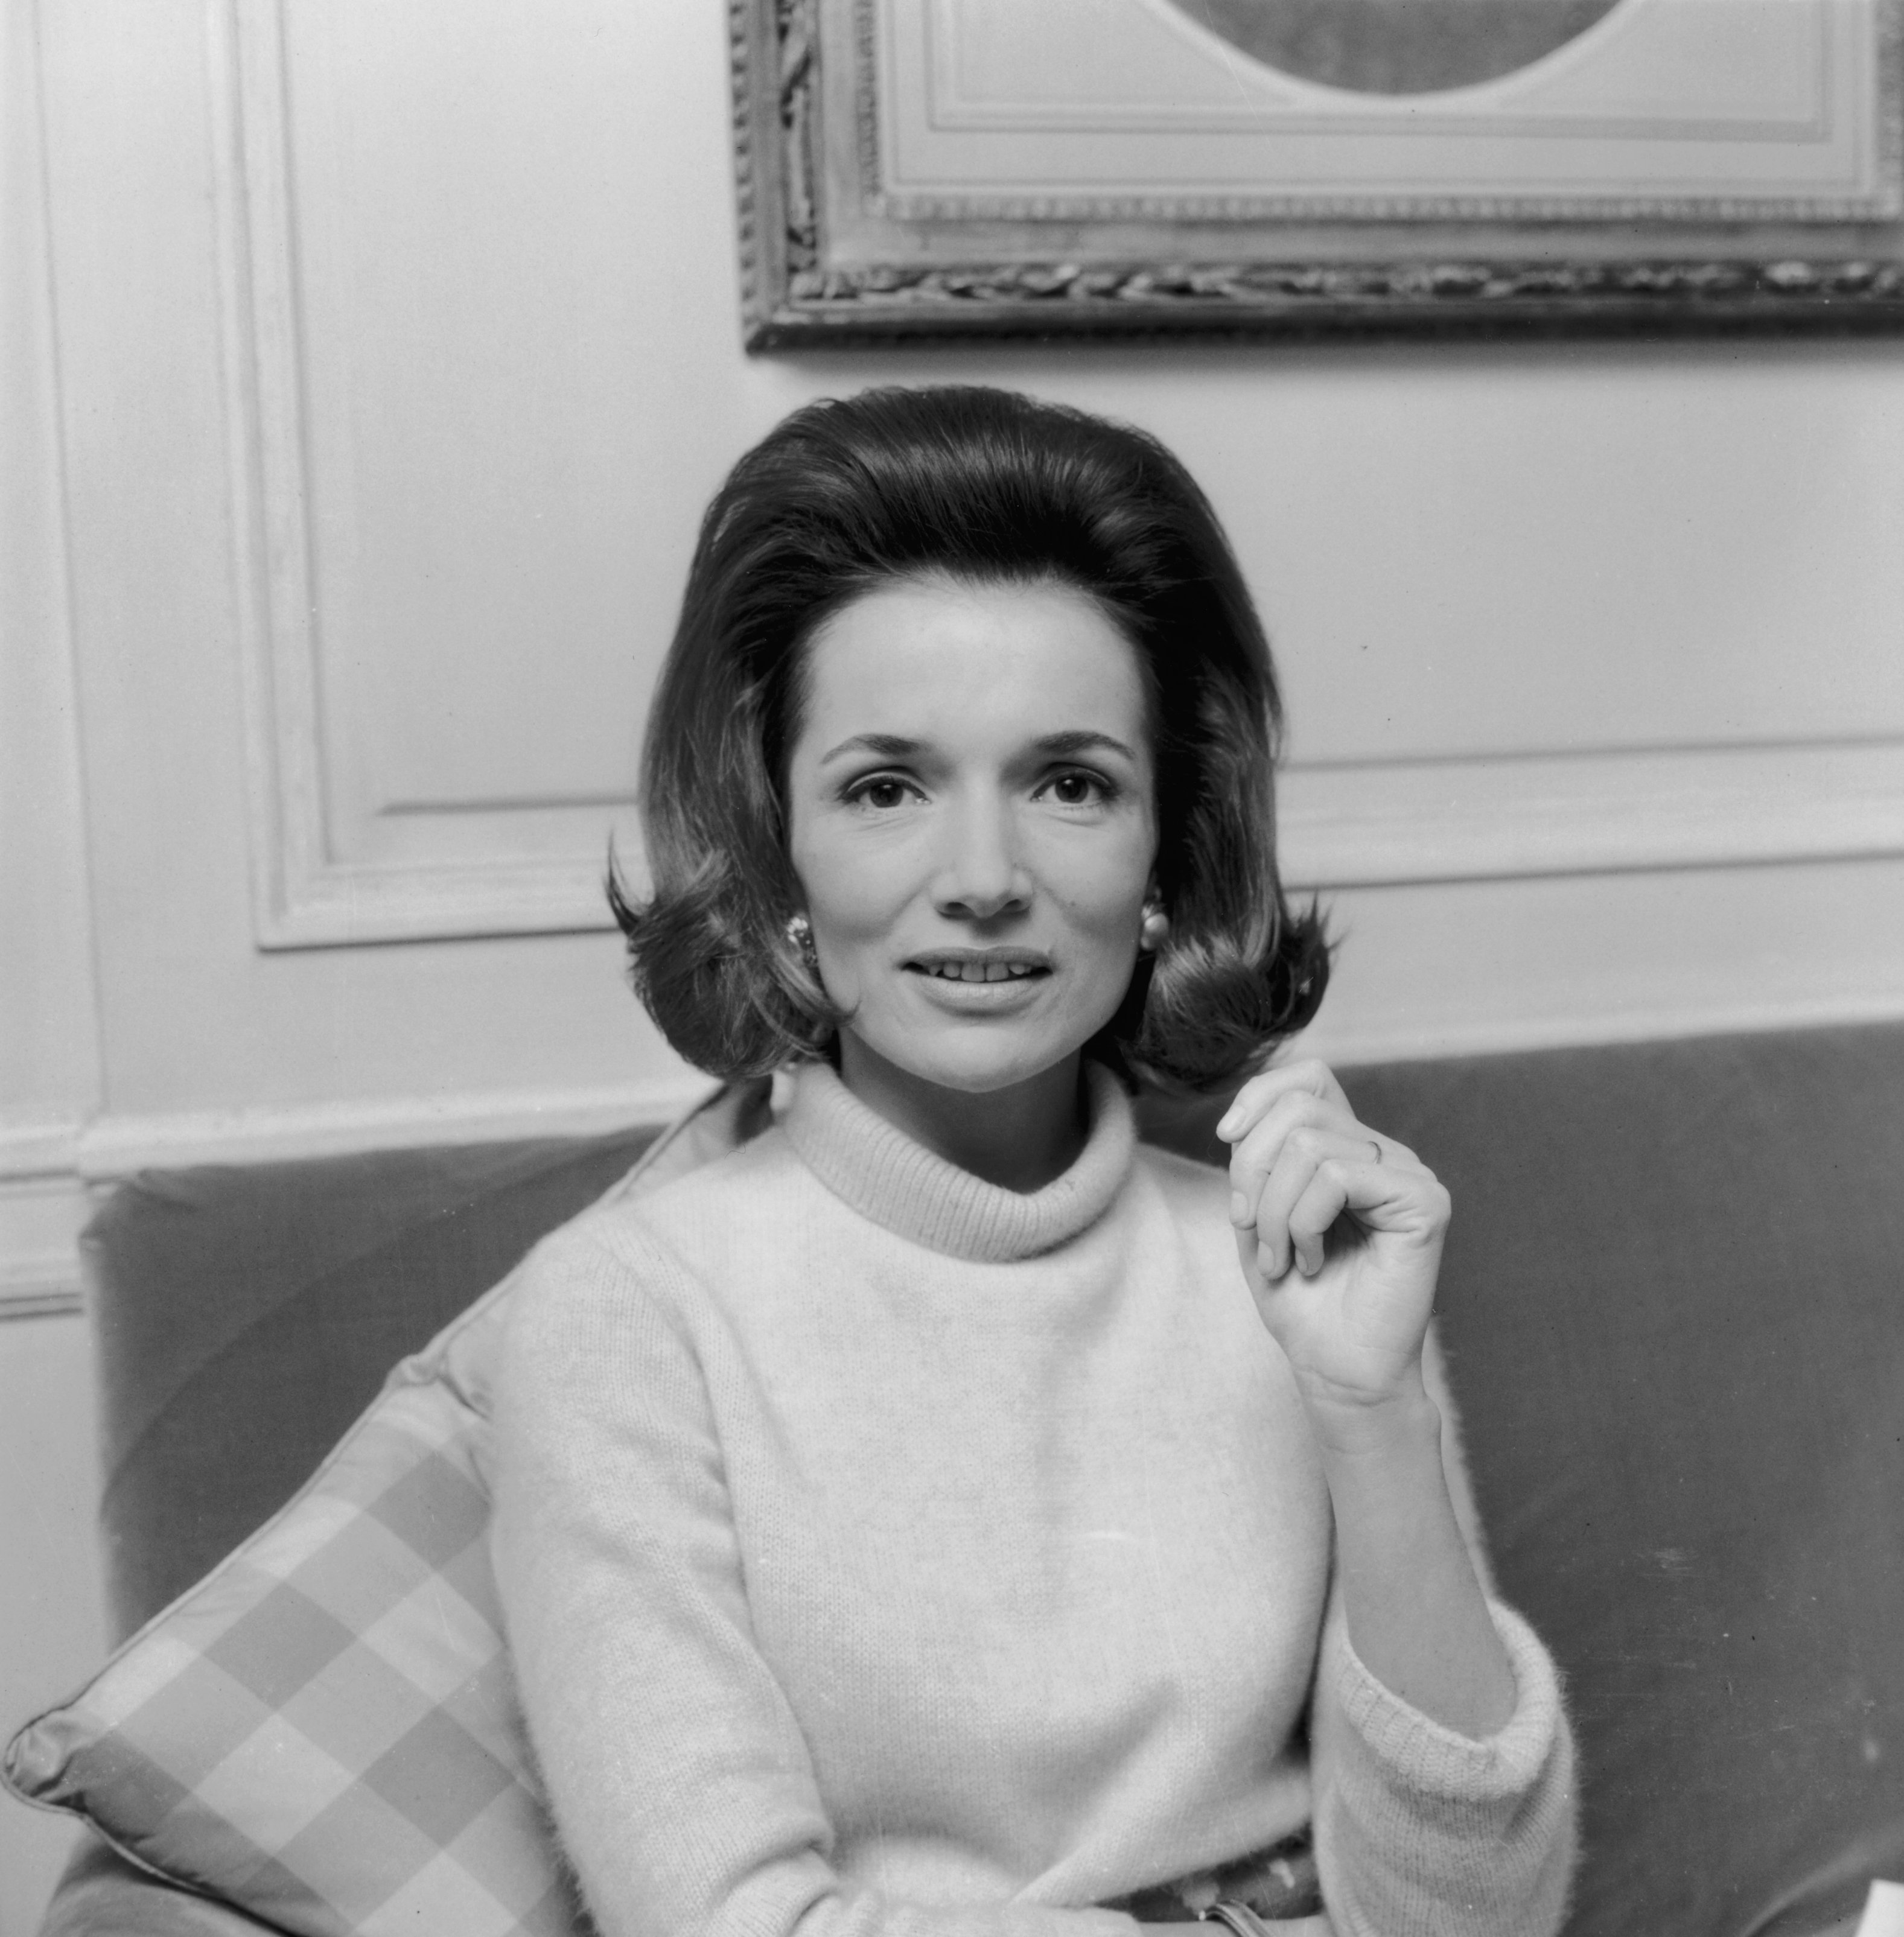 13th June 1967: Princess Lee Radziwill, sister of Jacqueline Kennedy. | Source: Getty Images